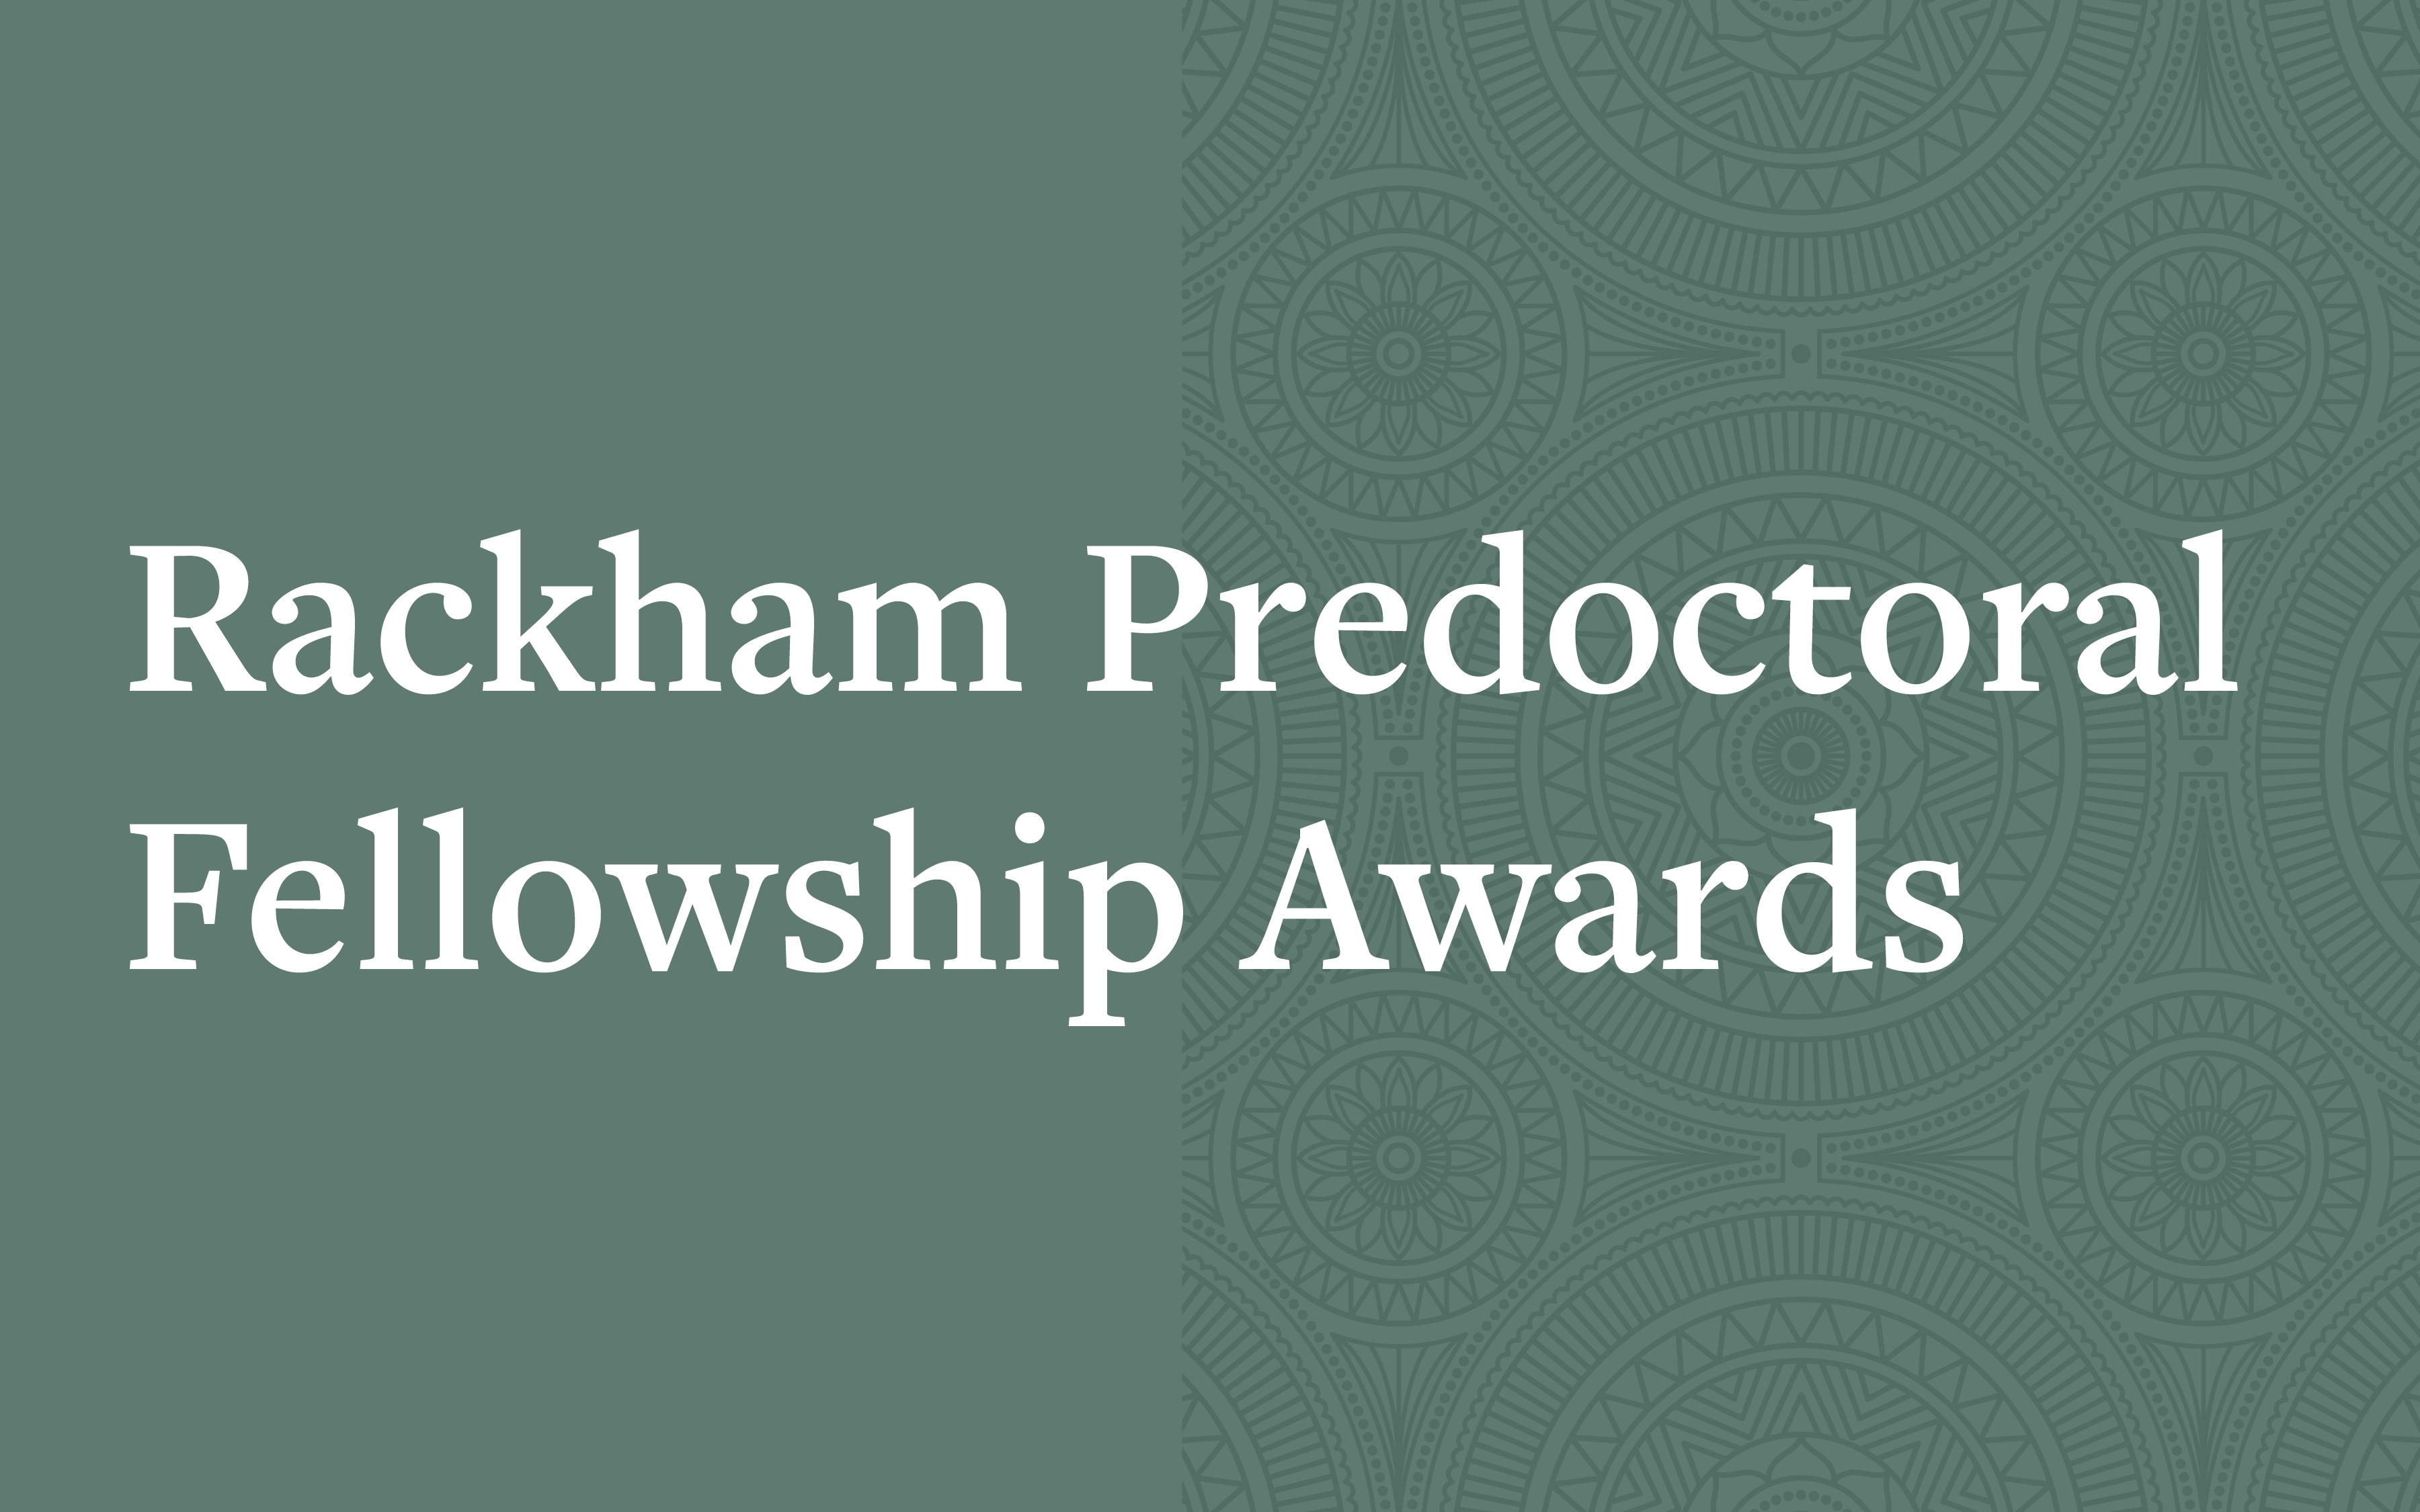 Announcing the 2021-2022 Rackham Predoctoral Fellowship Awards - Rackham Graduate School: University of Michigan